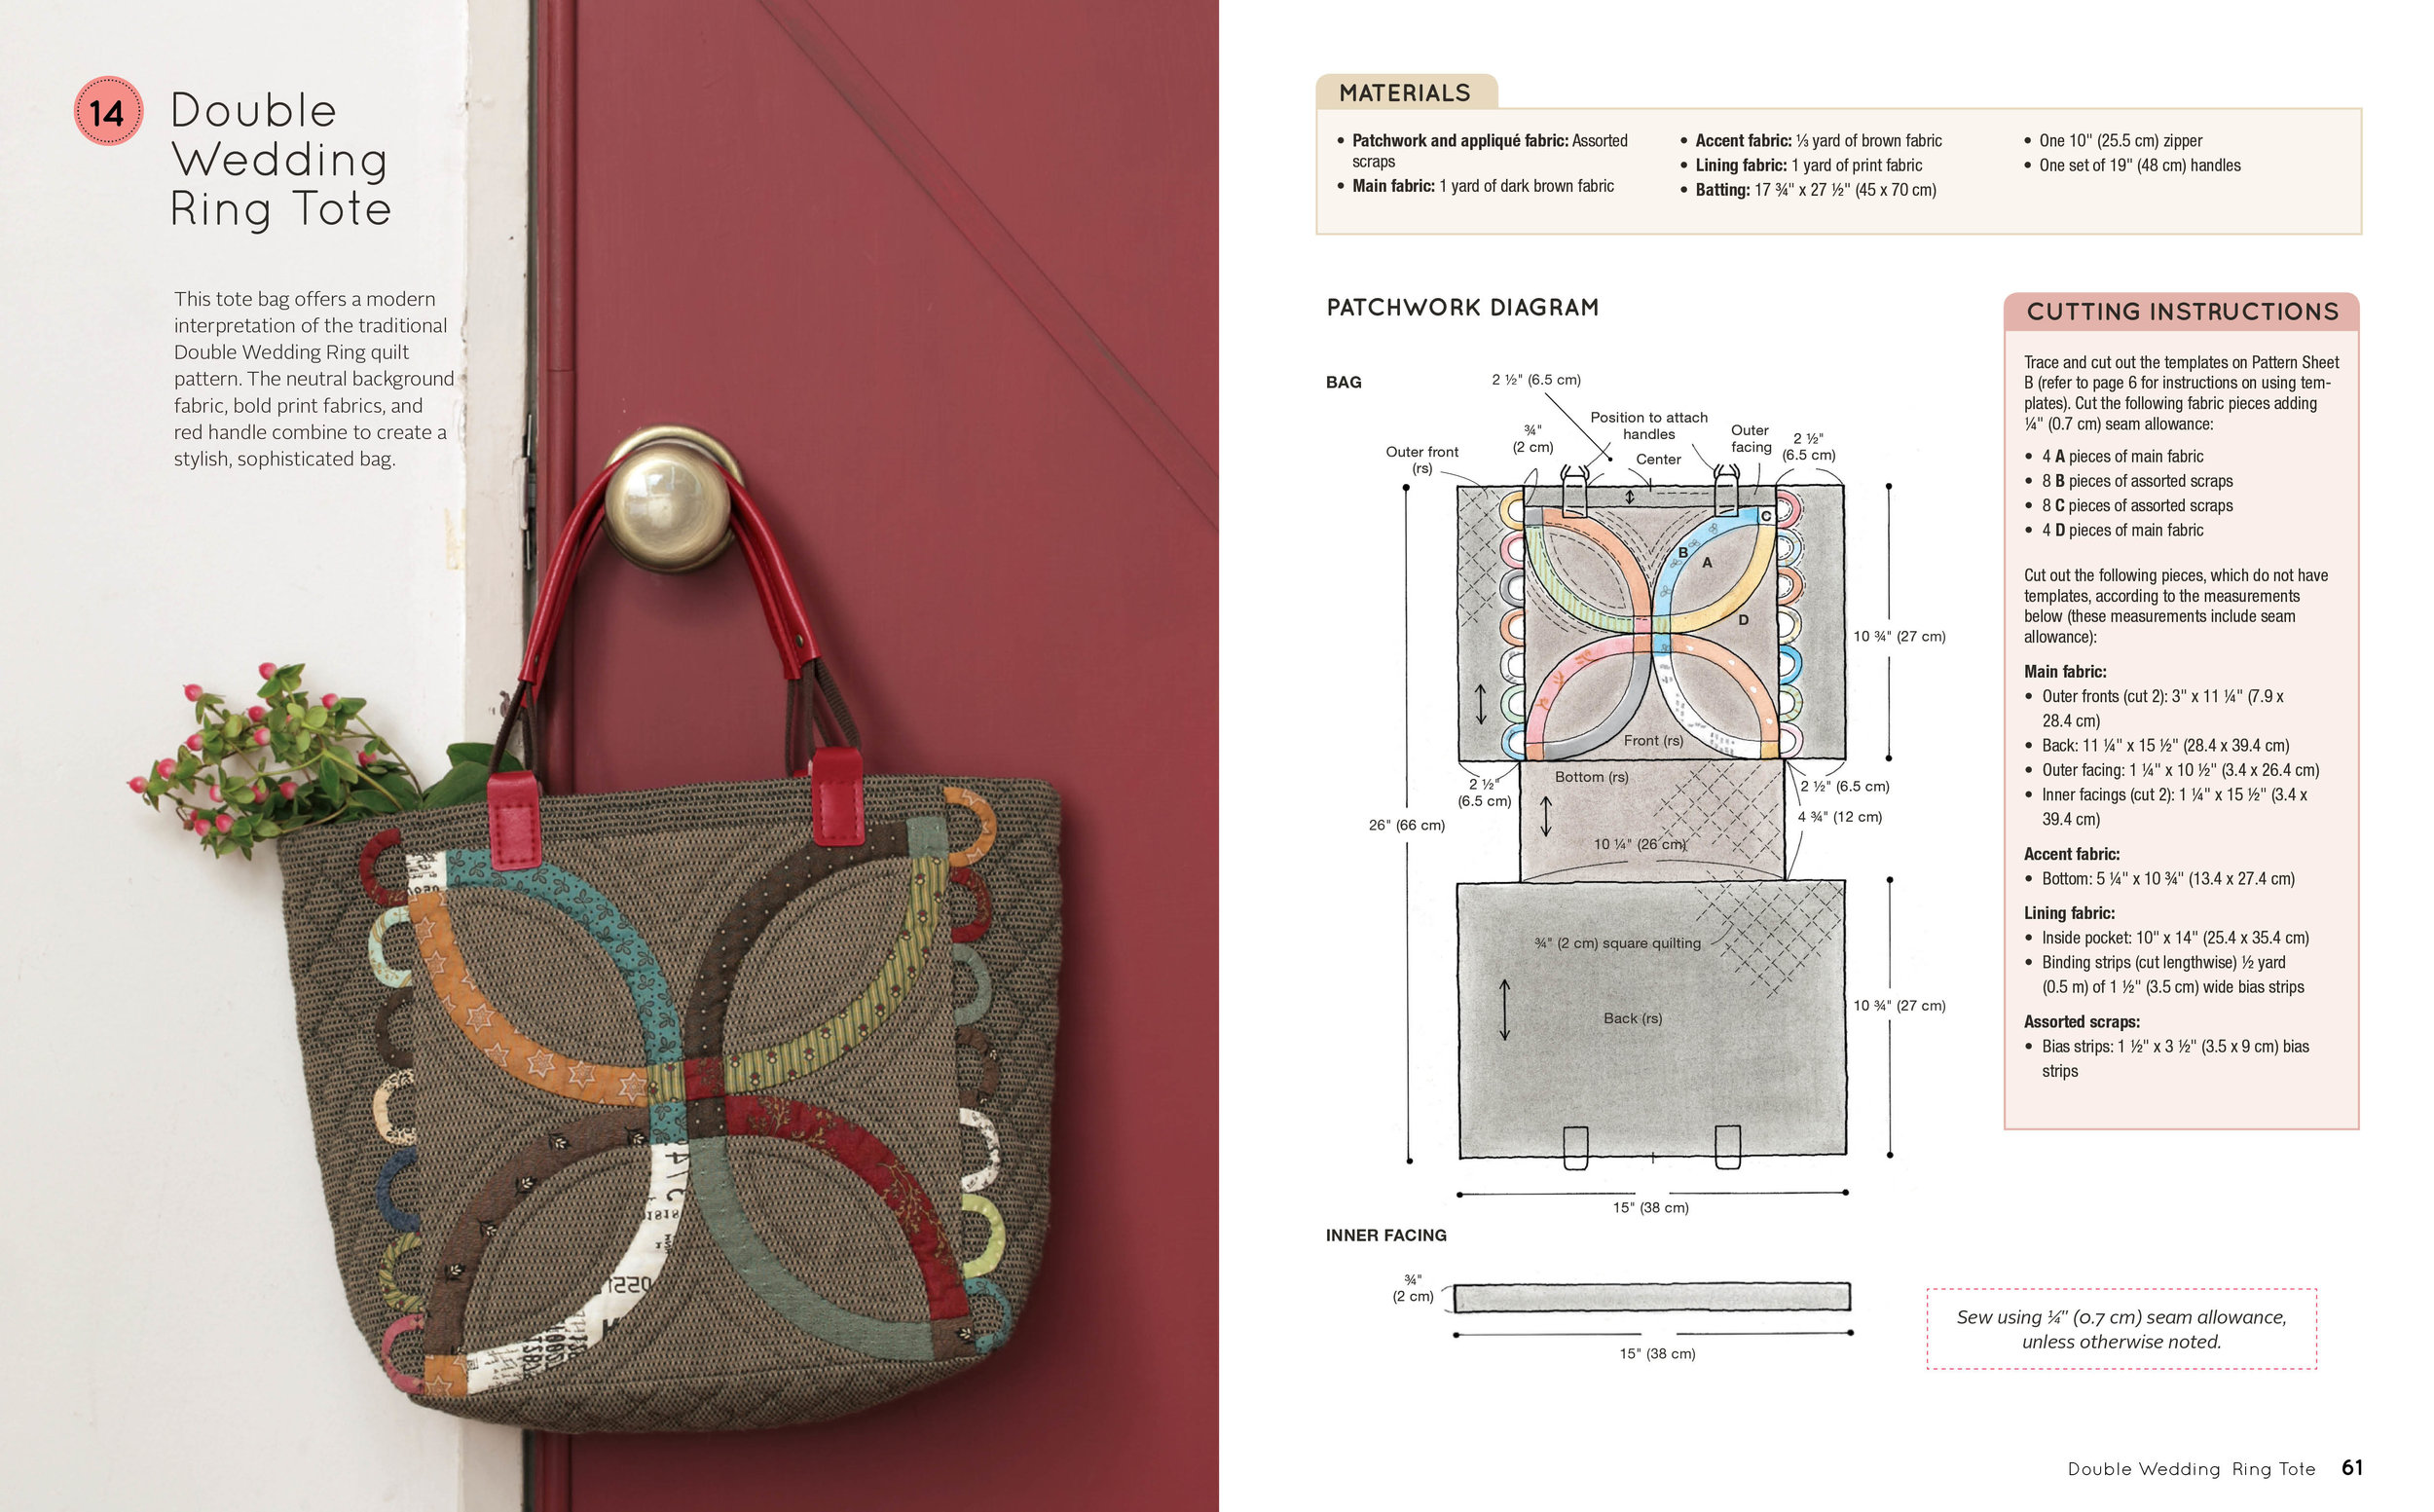 Quilted Bags and Gifts 60.61.jpg